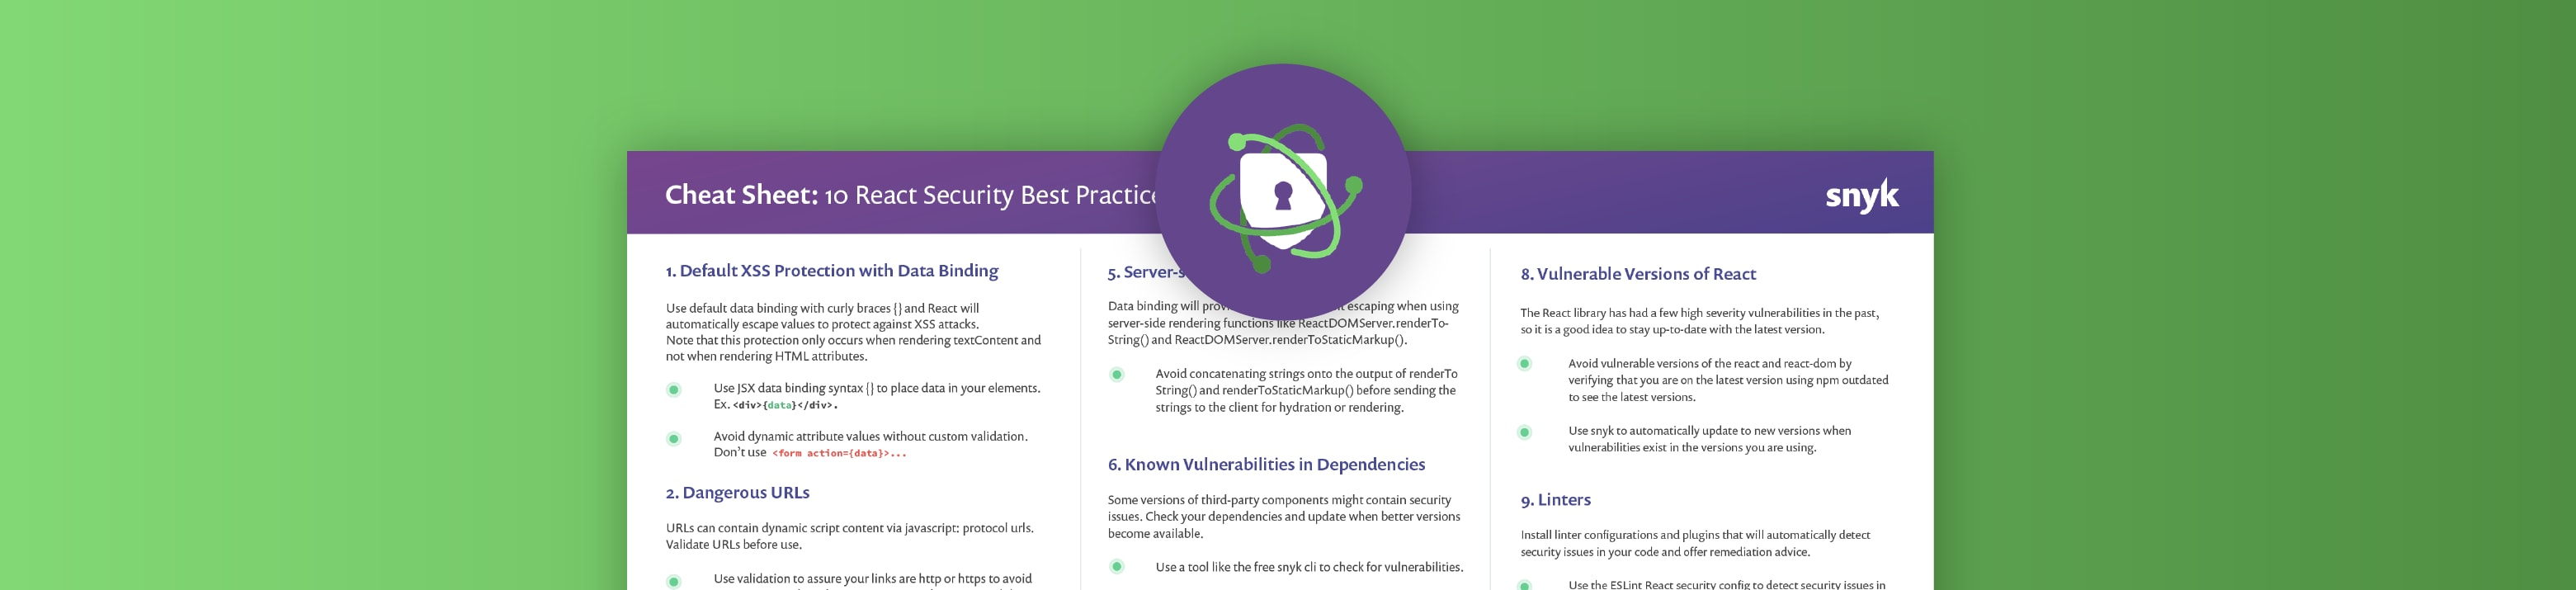 React security best practices